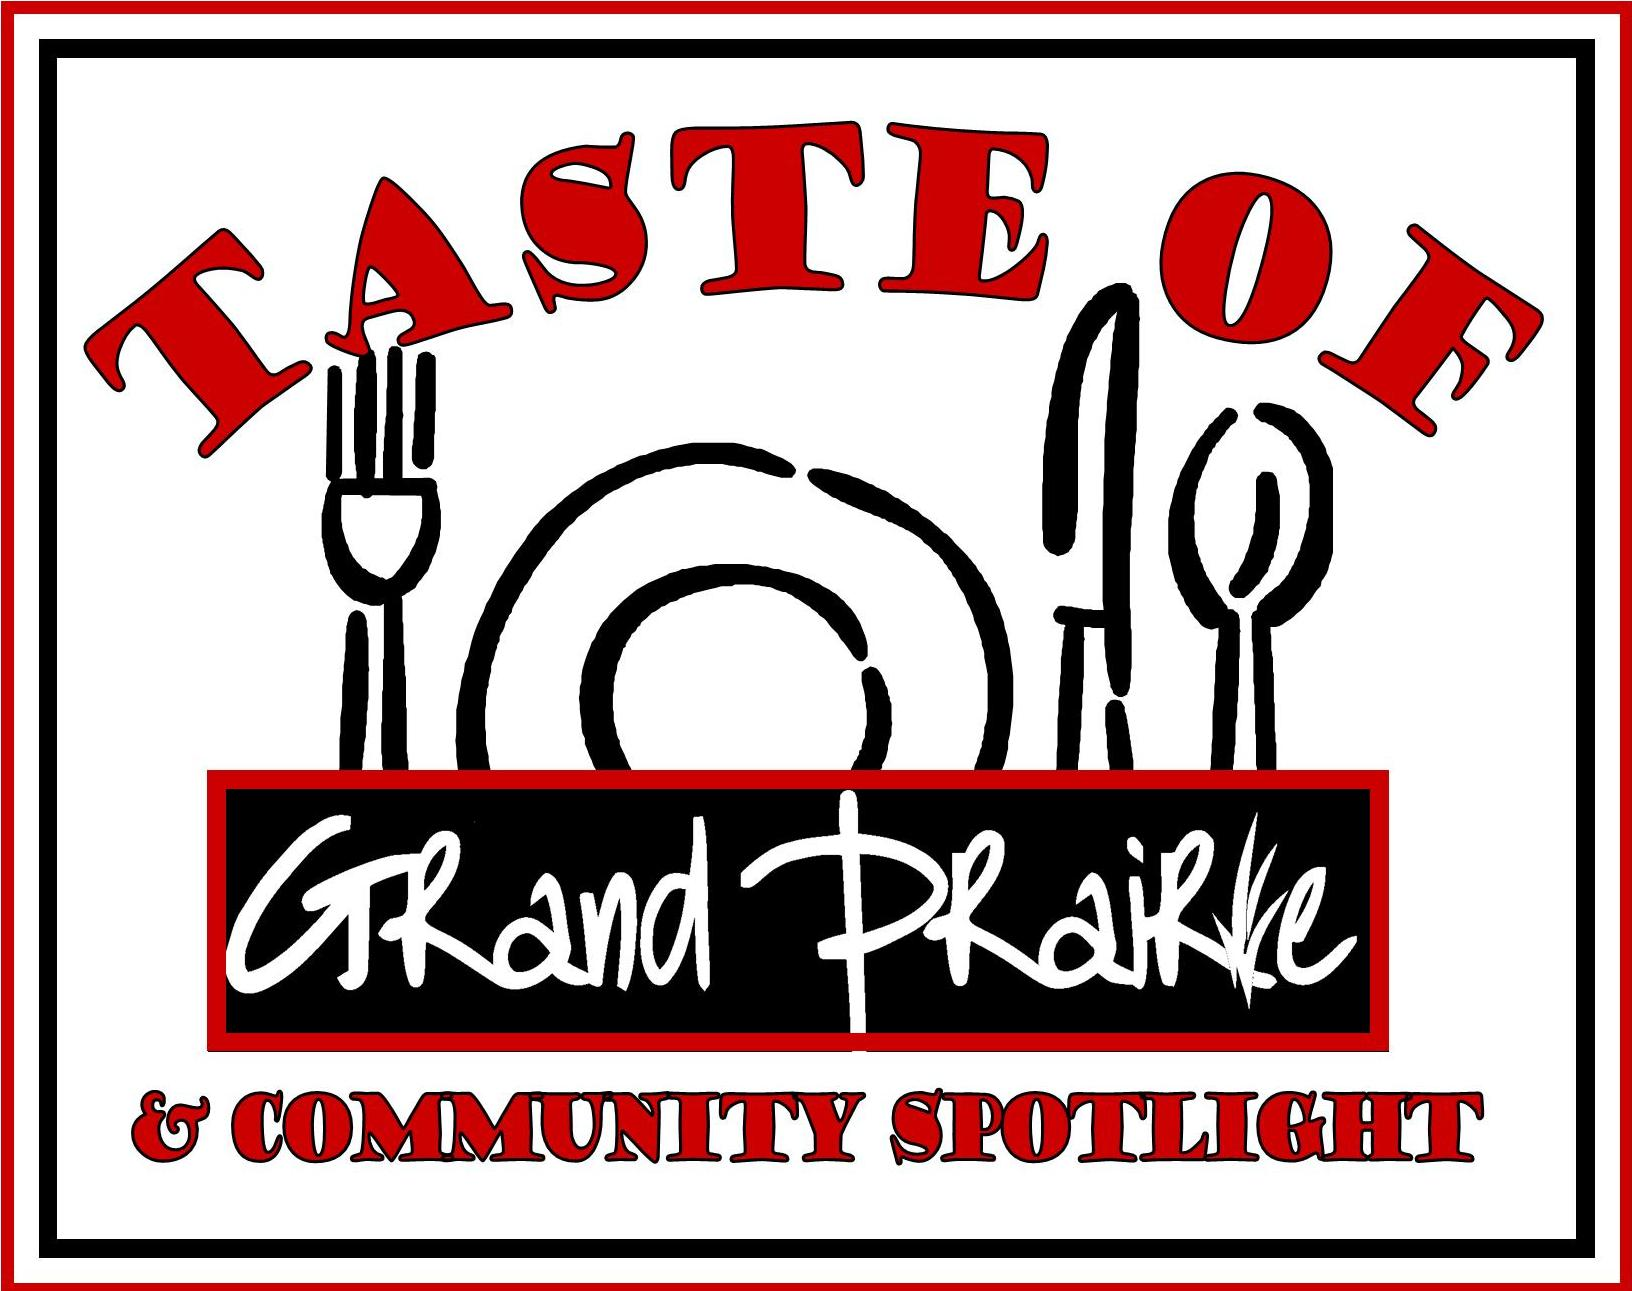 Grand Prairie Chamber of Commerce invites you to have a booth at the 9th Annual Taste of Grand Prairie